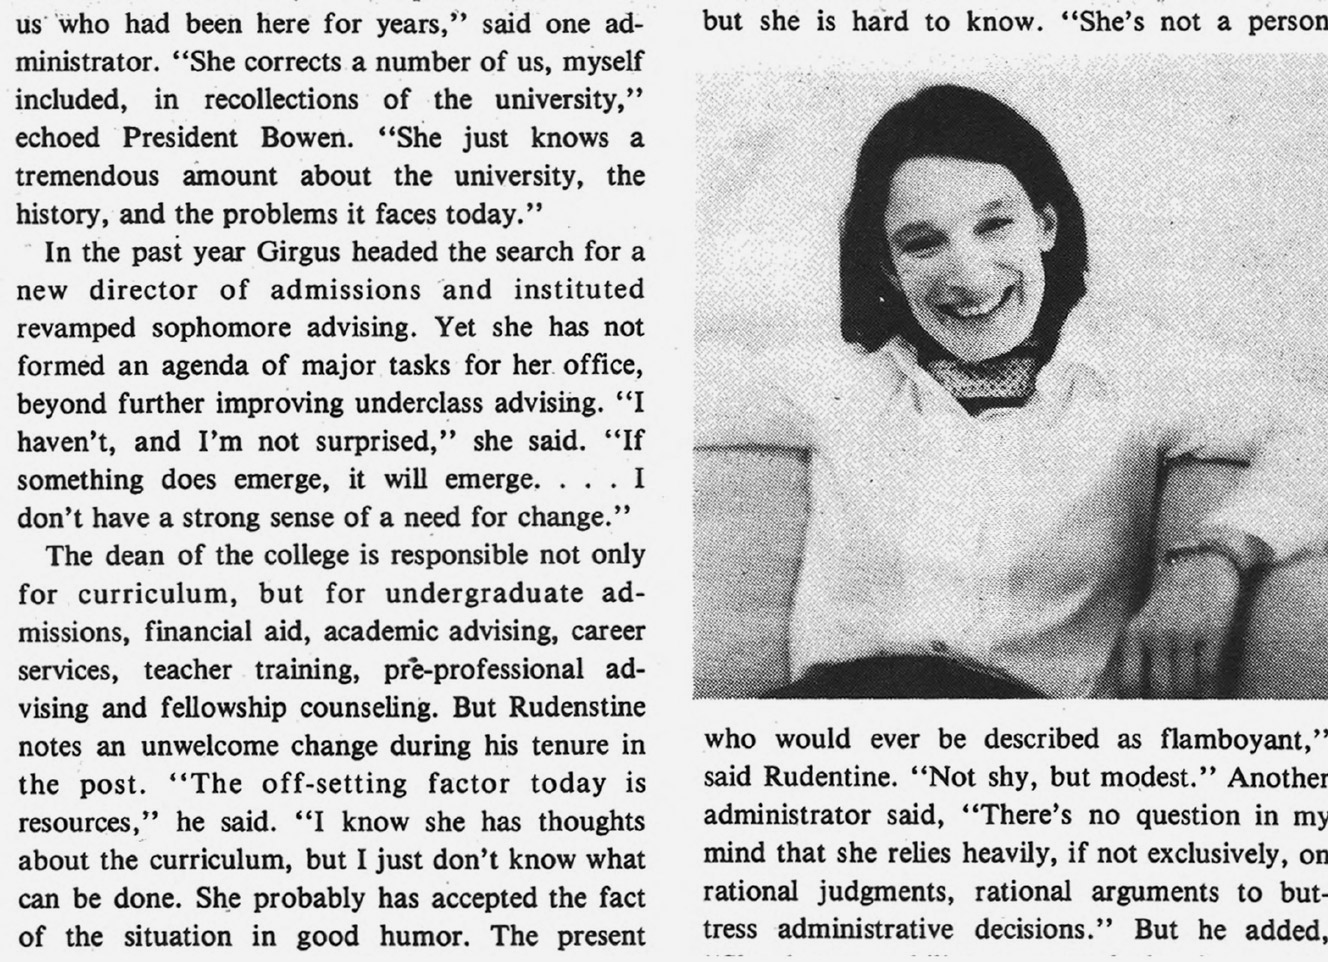 Daily Princetonian article clipping about Joan Girgus, the first woman to be named Dean of the College.